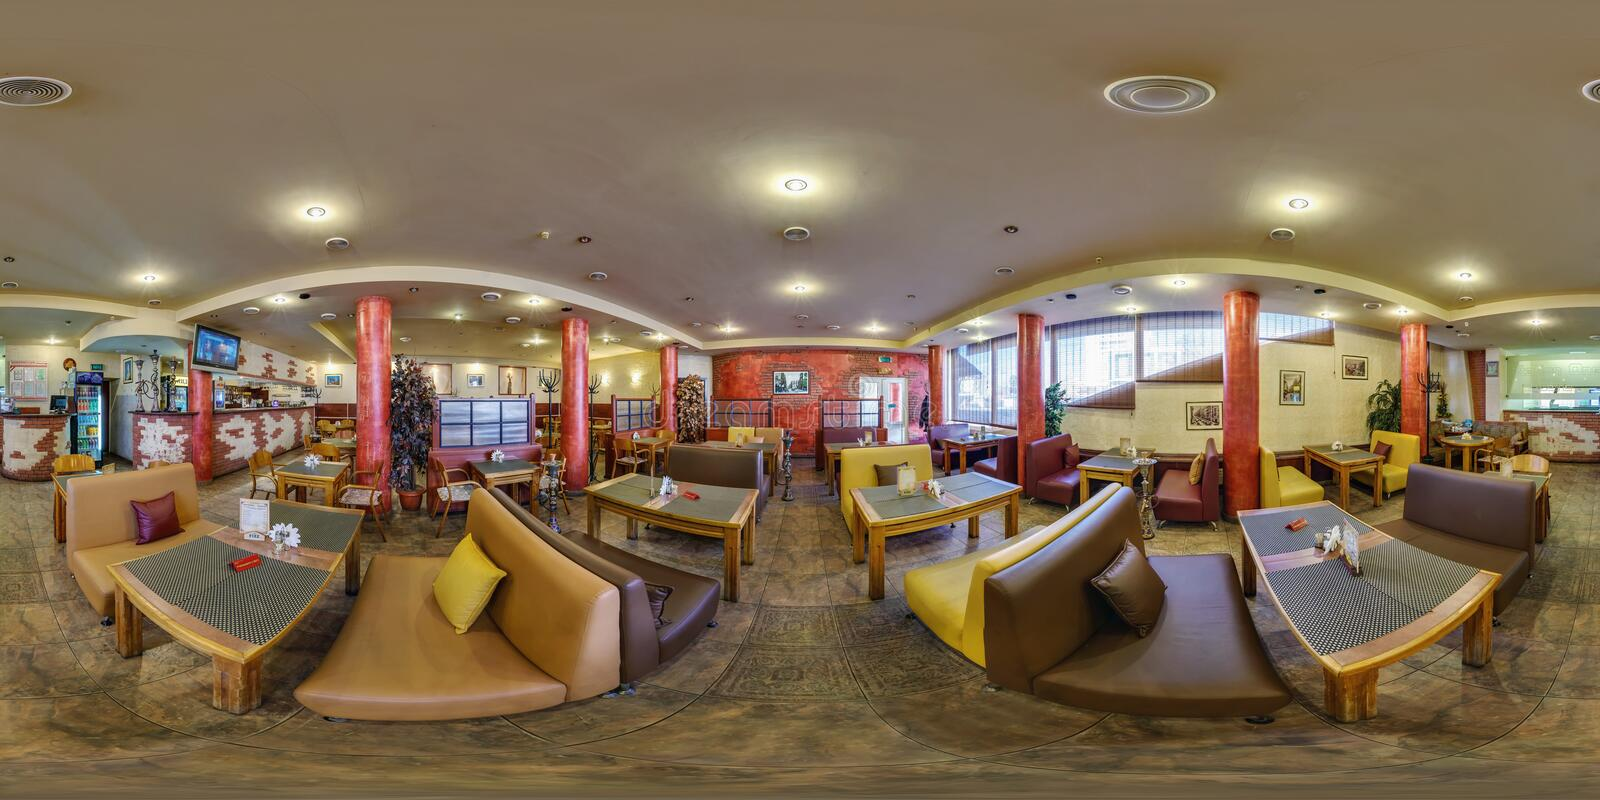 GOMEL, BELARUS - APRIL 27, 2012: full 360 degree seamless panorama in equirectangular spherical equidistant projection in stylish. Arabic cafe, VR content royalty free stock images